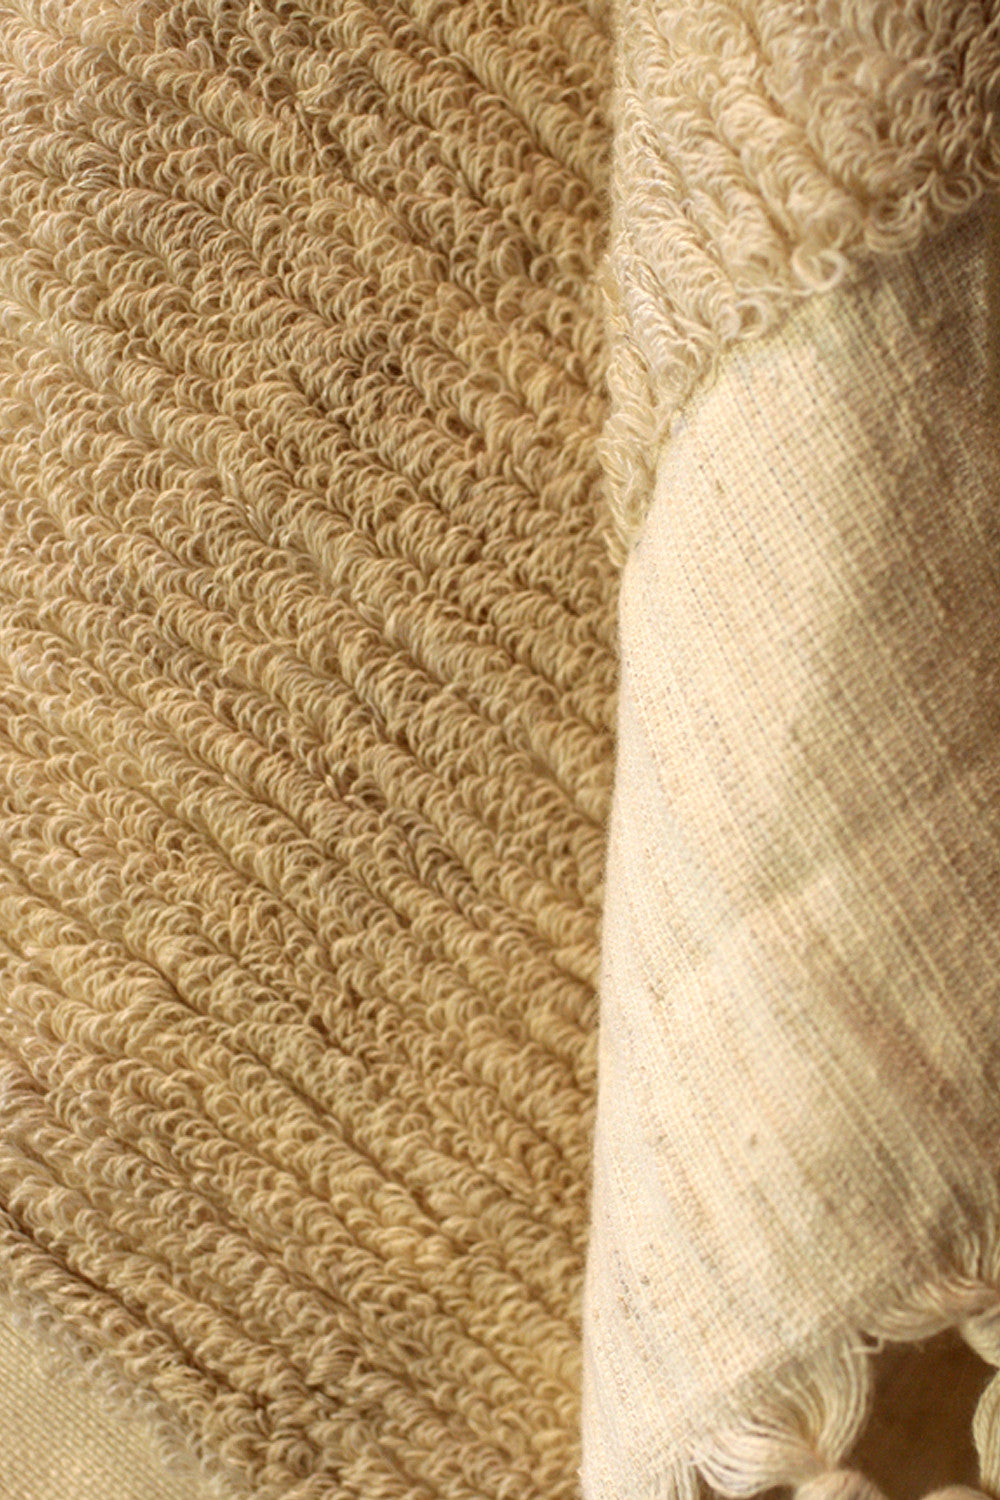 Wevist Linen Luxe Bath Towels